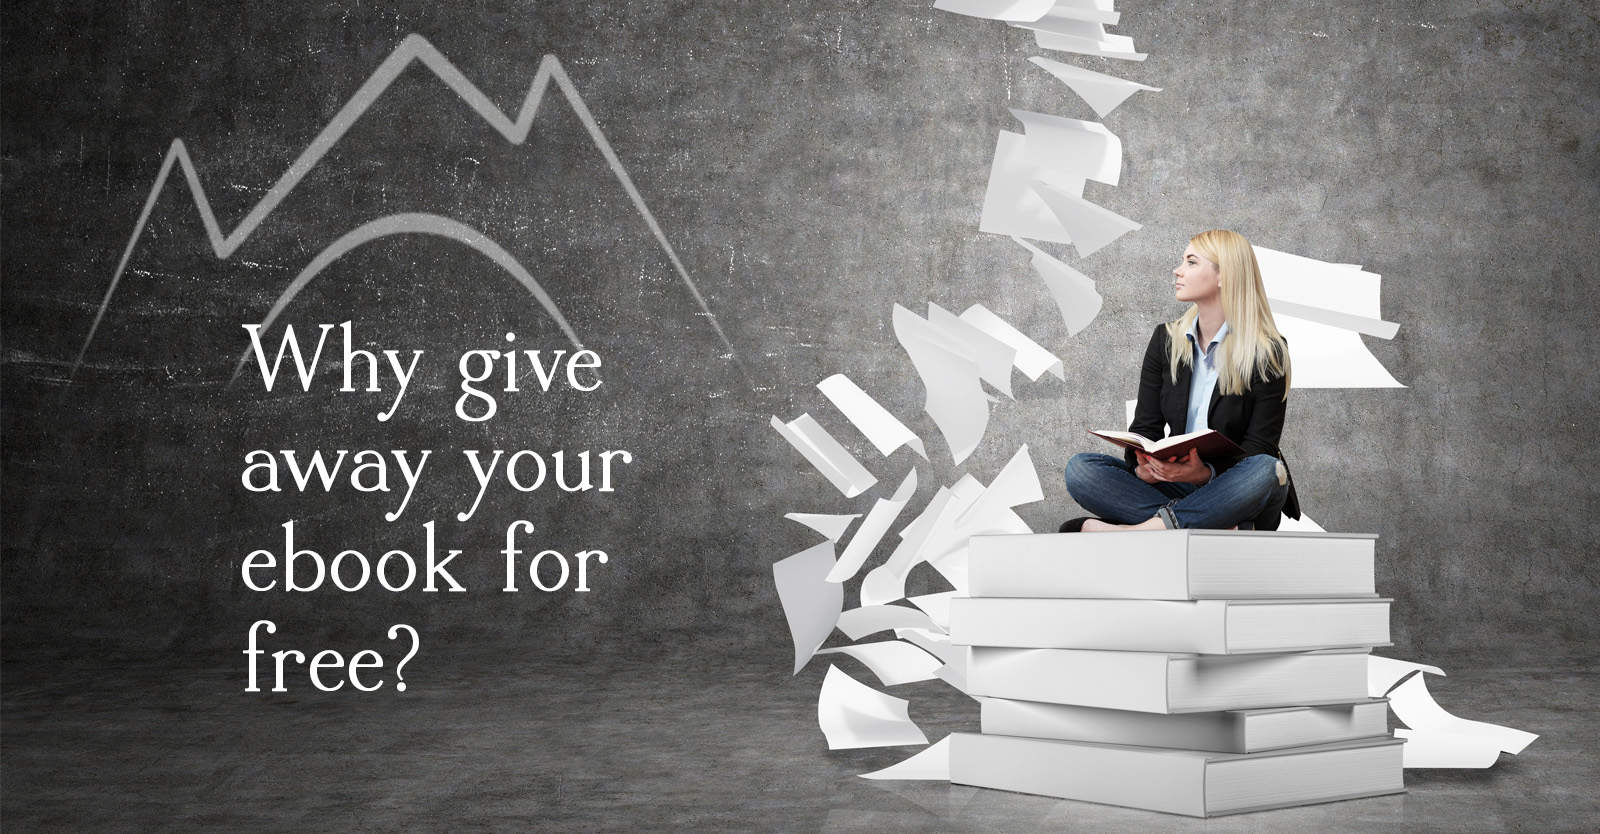 Why give away your ebook for free